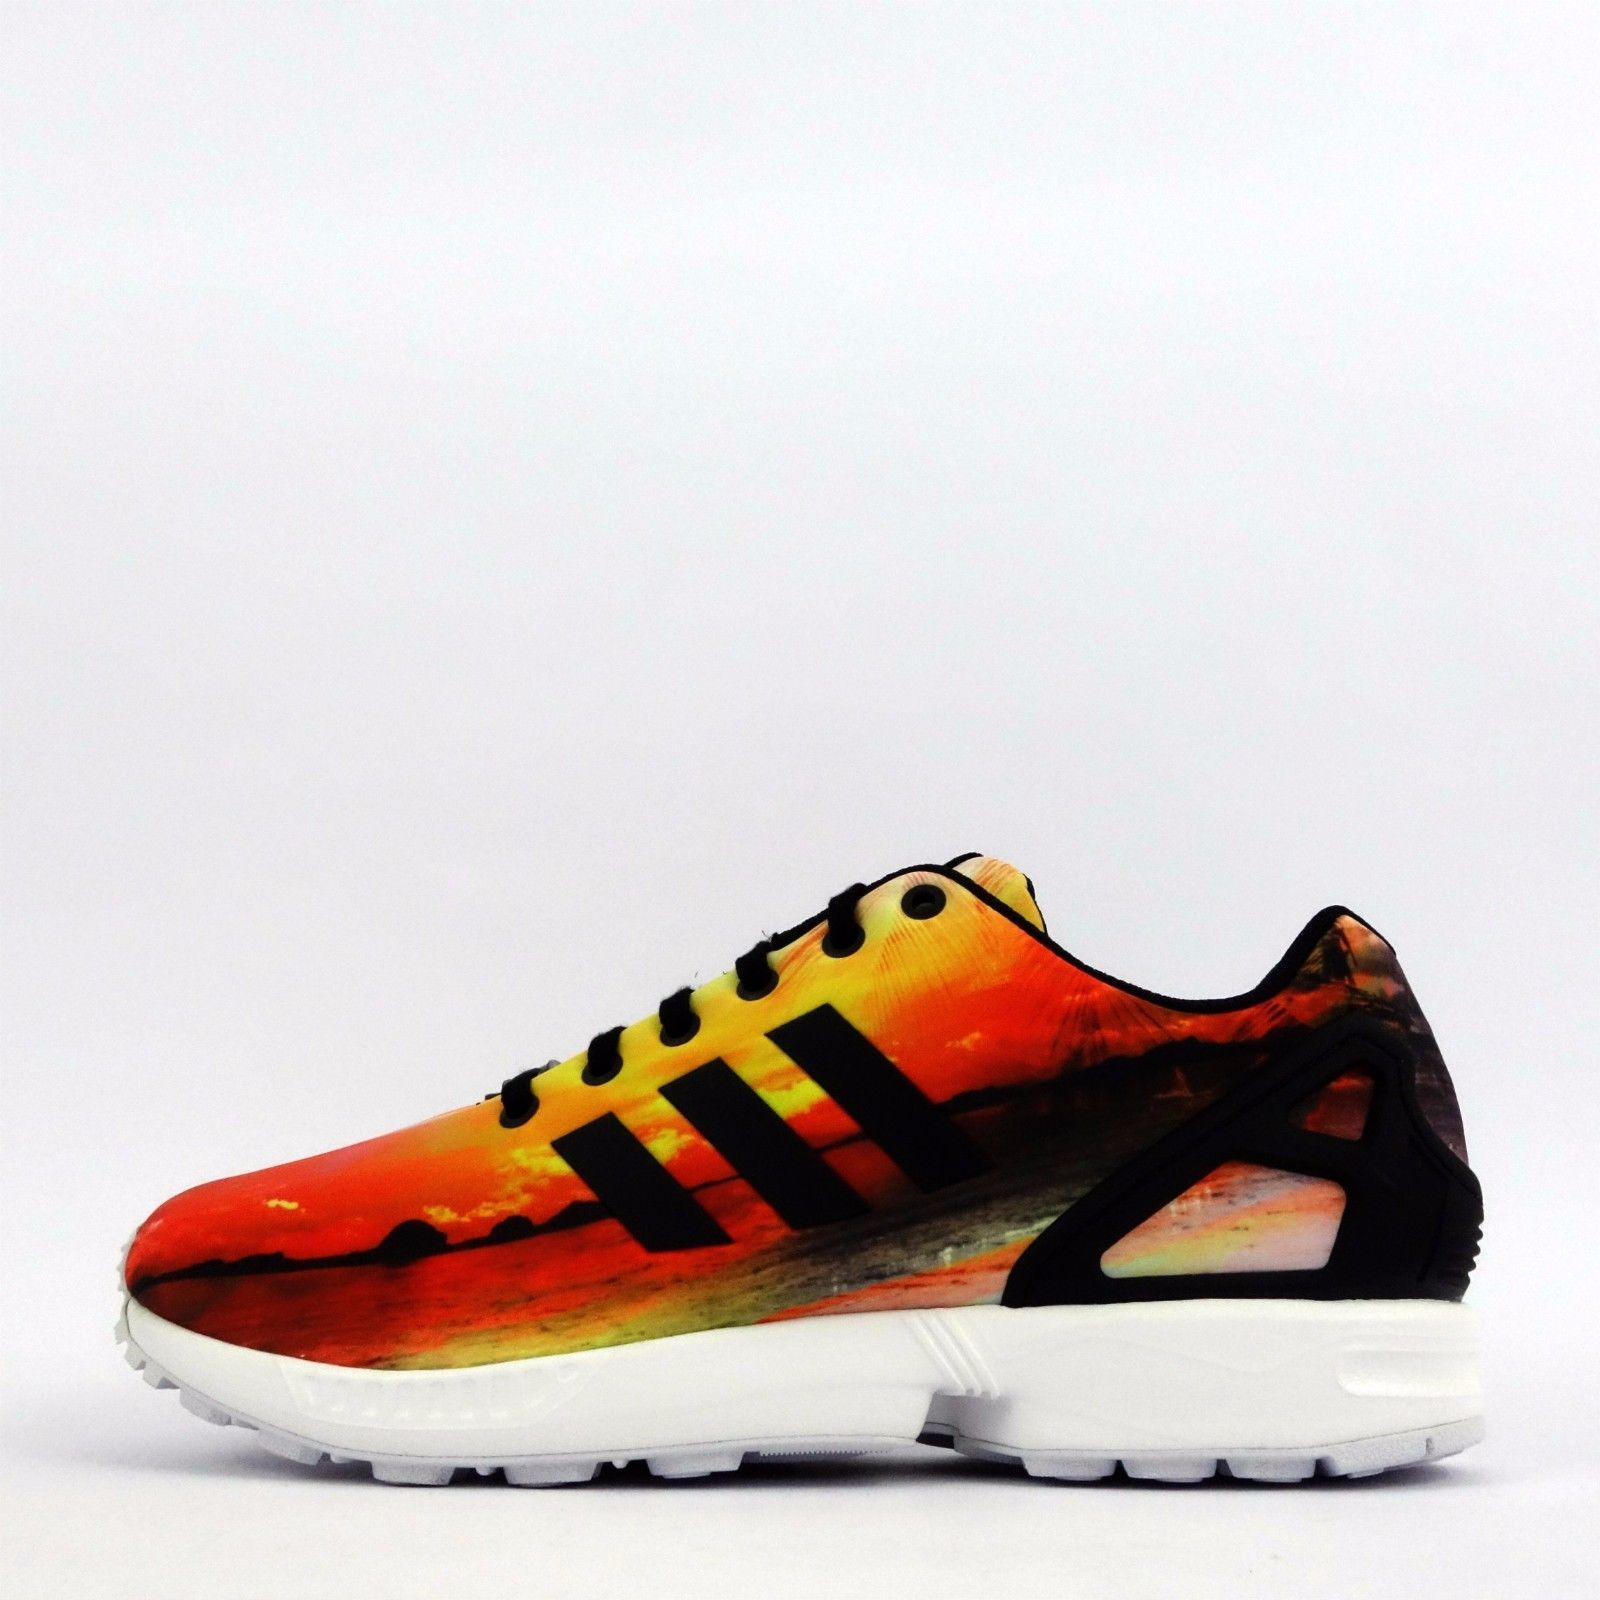 cdd24695be479 adidas Originals ZX Flux Beach Palm Tree Mens Trainers Shoes Black Yellow